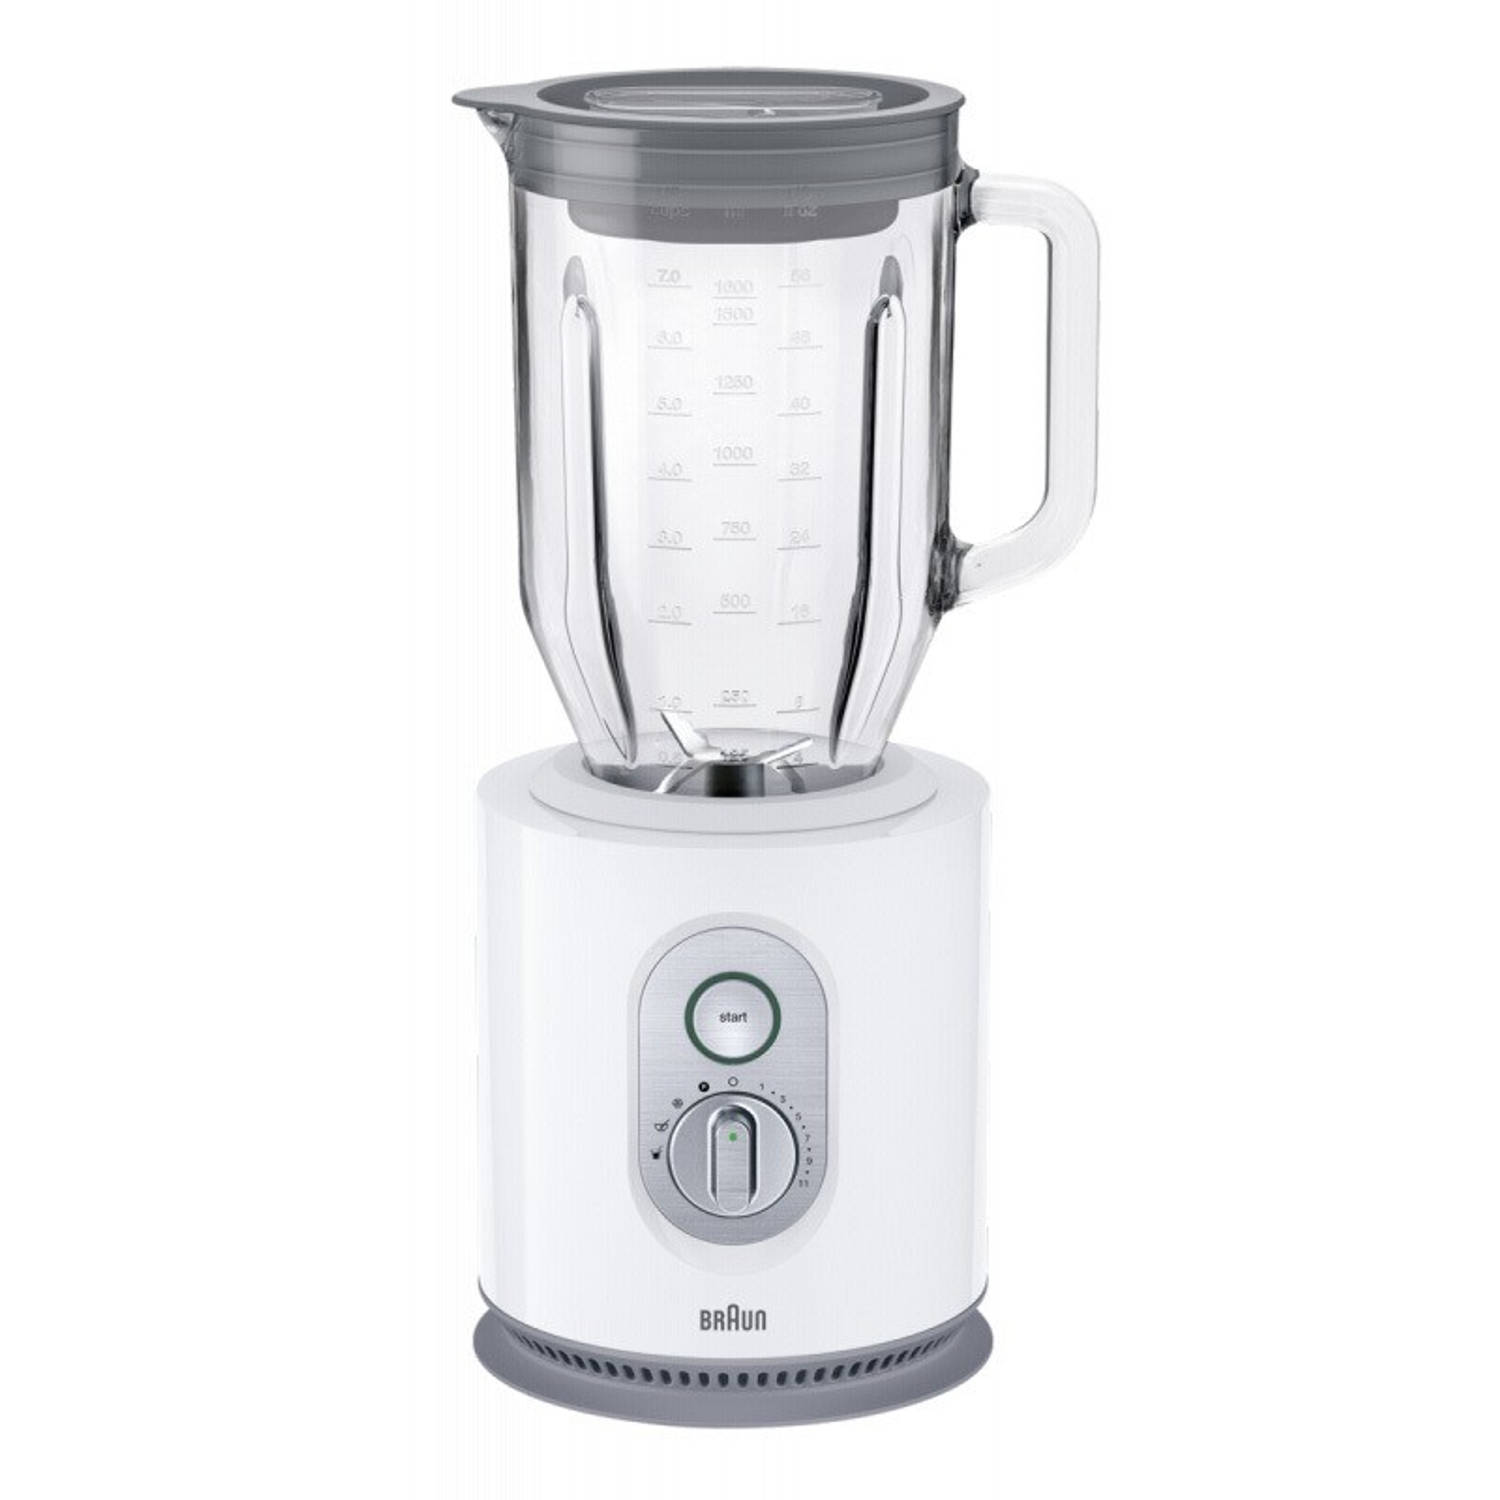 Blender IdentityCollection JB 5160 WH